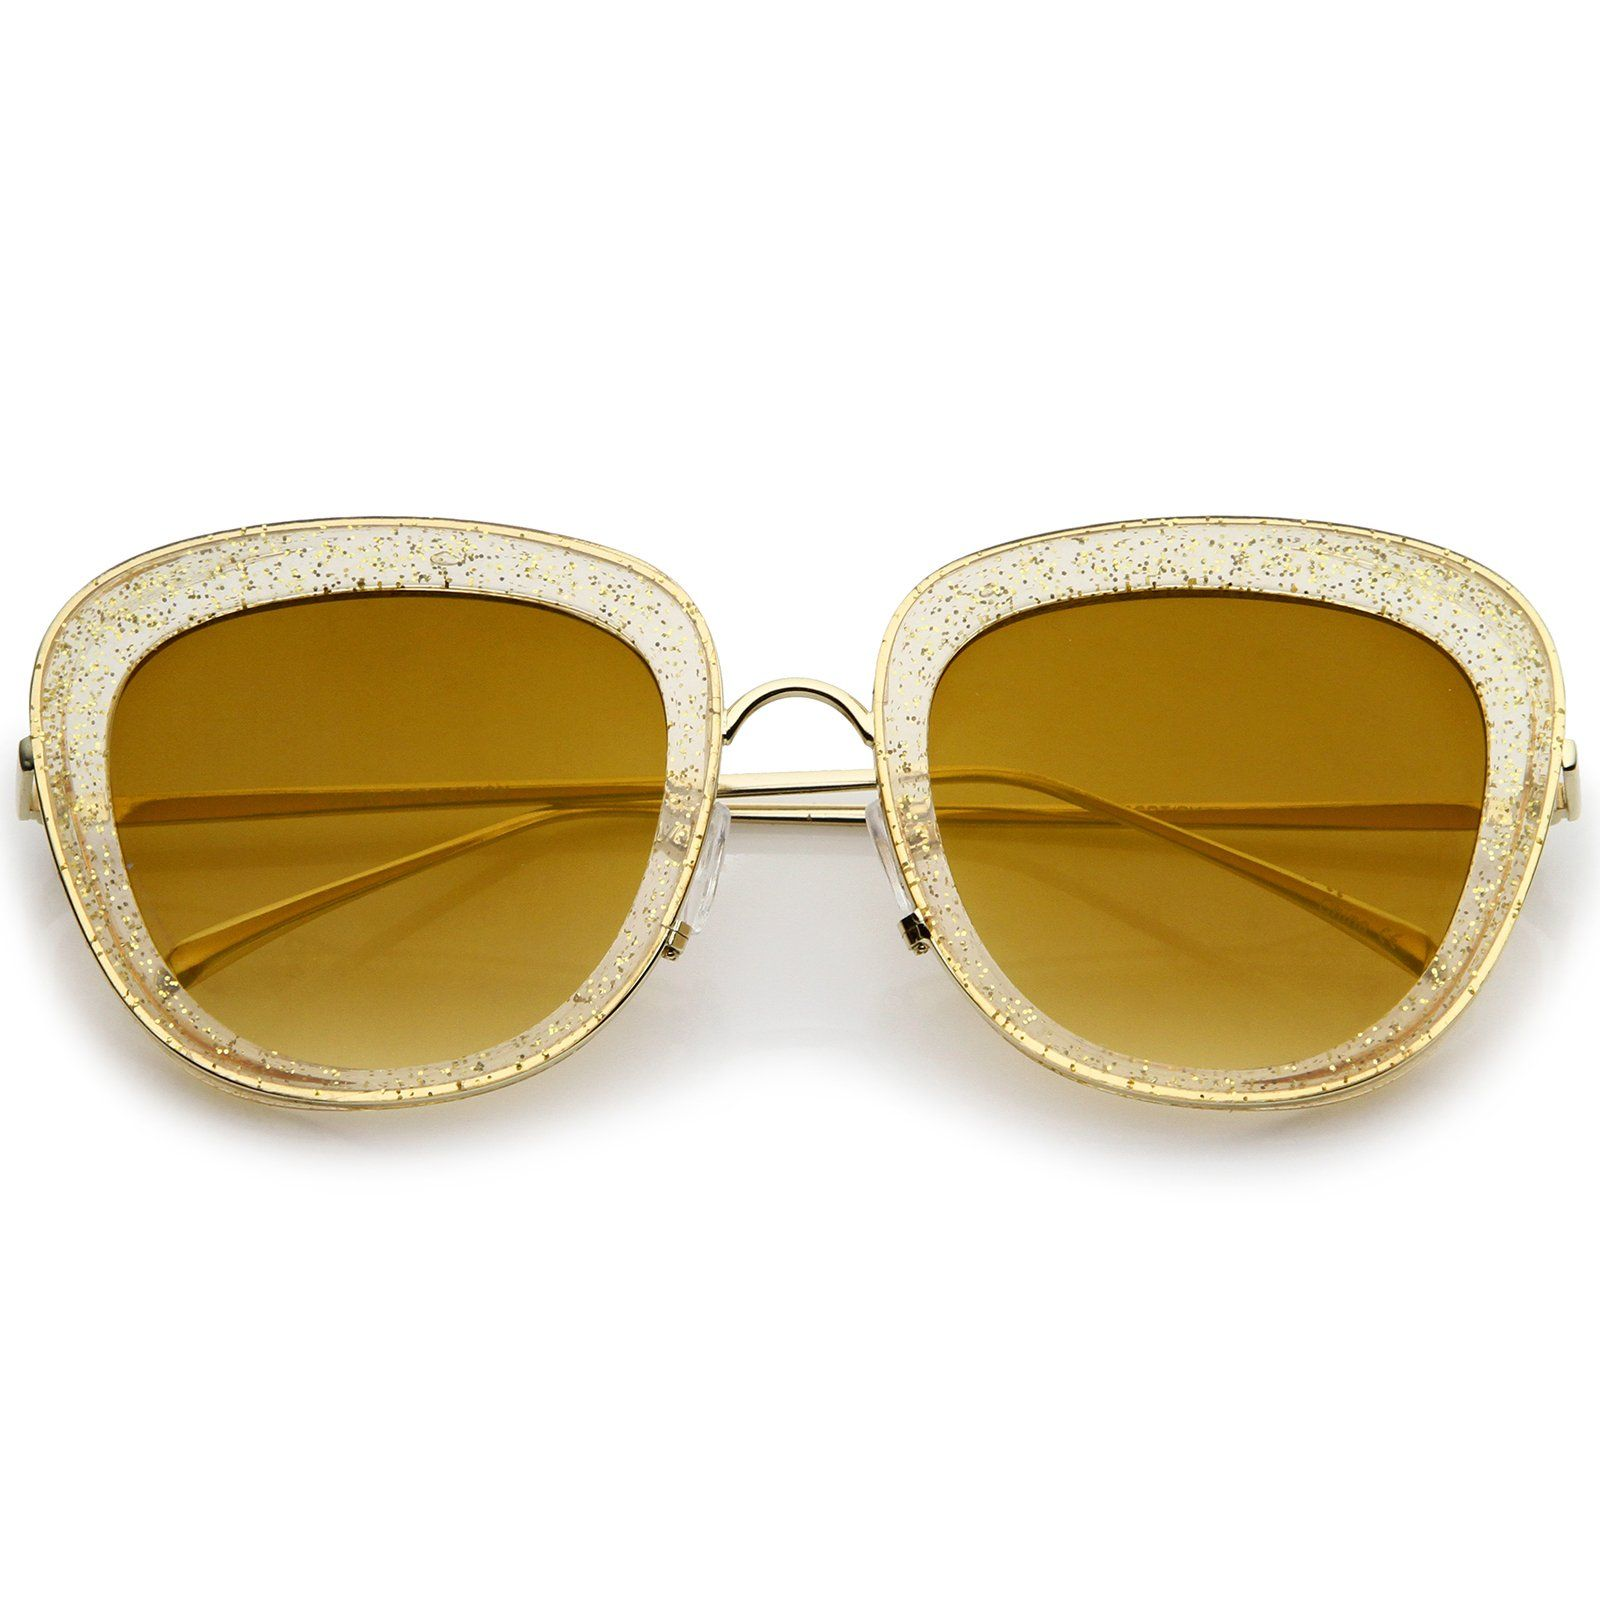 4fb7bb838f44f Transparent Glitter Frame Square Colored Mirror Lens Oversize Sunglasses  53mm